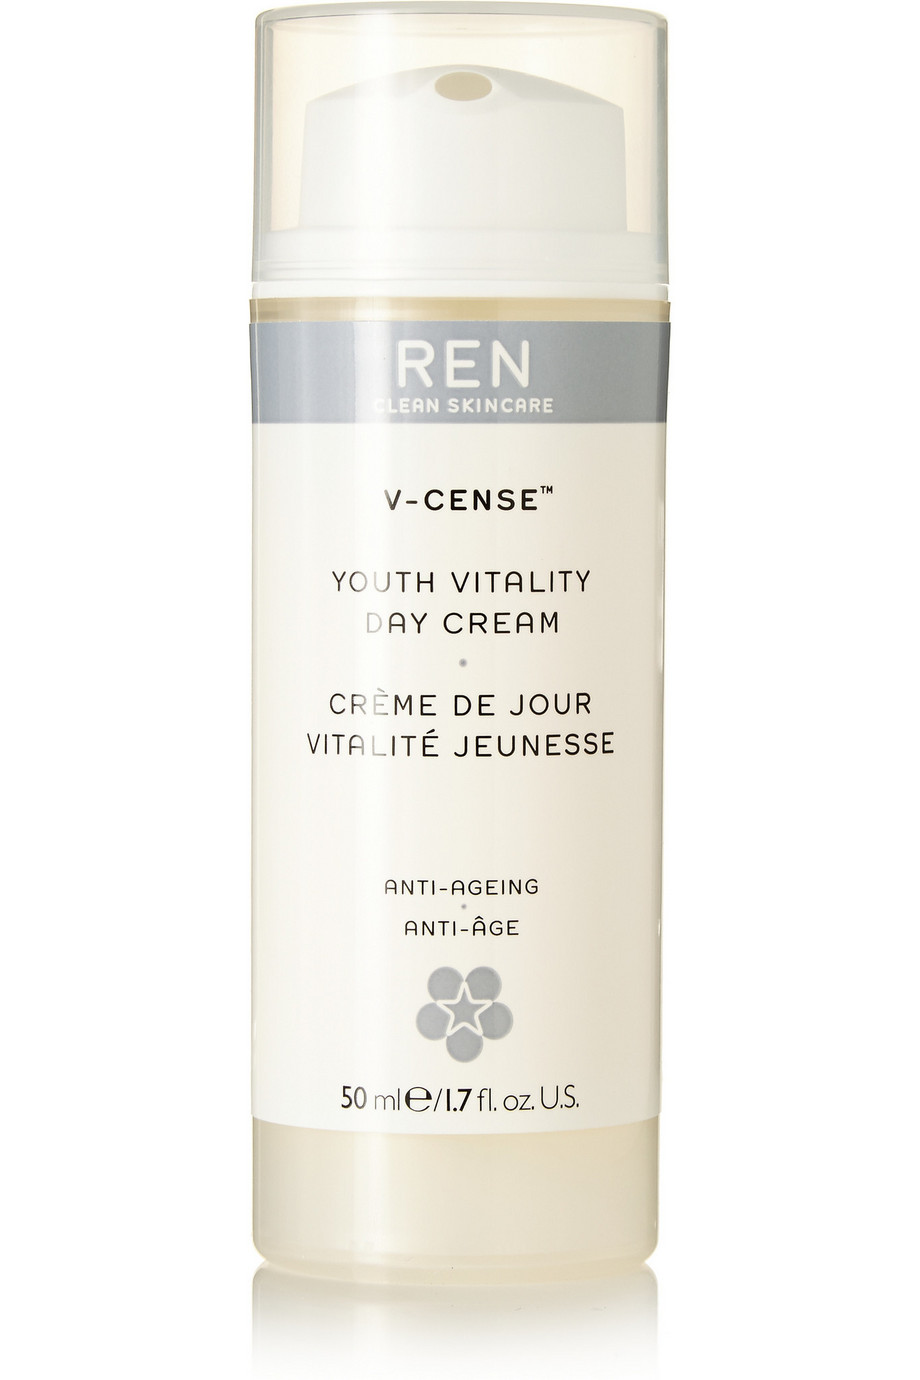 V-Cense Youth Vitality Day Cream, 50ml, by Ren Skincare